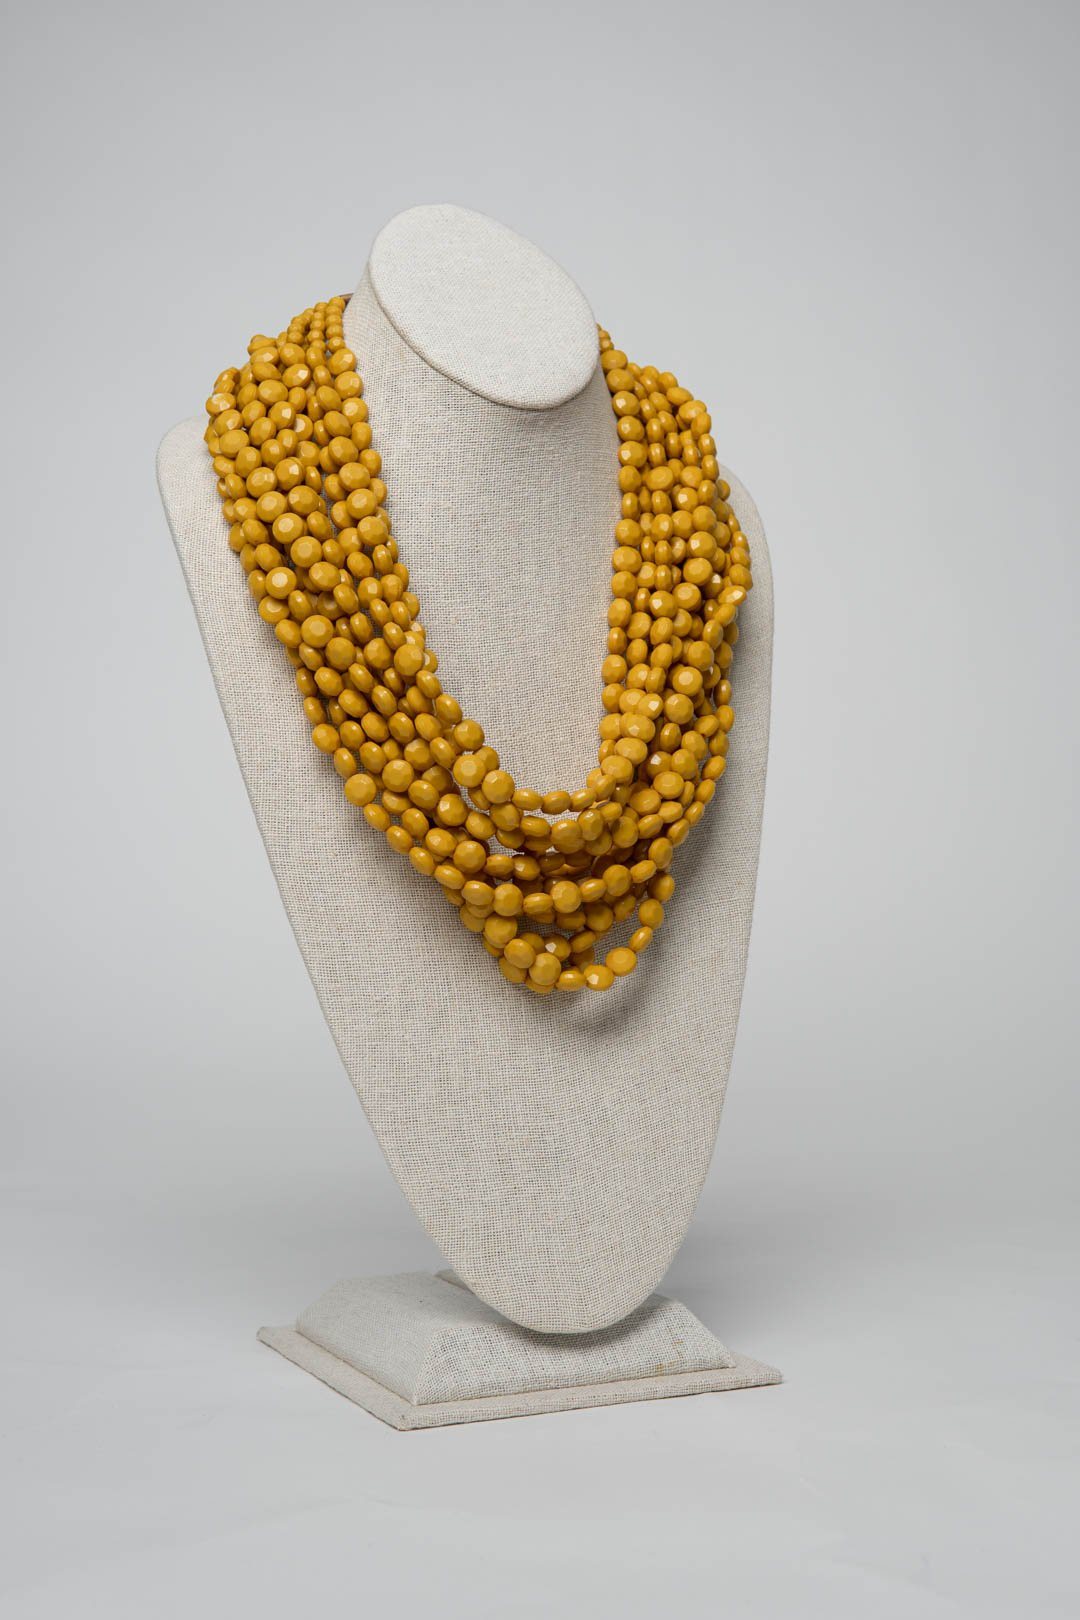 Fiesta Necklace Solitaire Cut - Mustard - Necklace